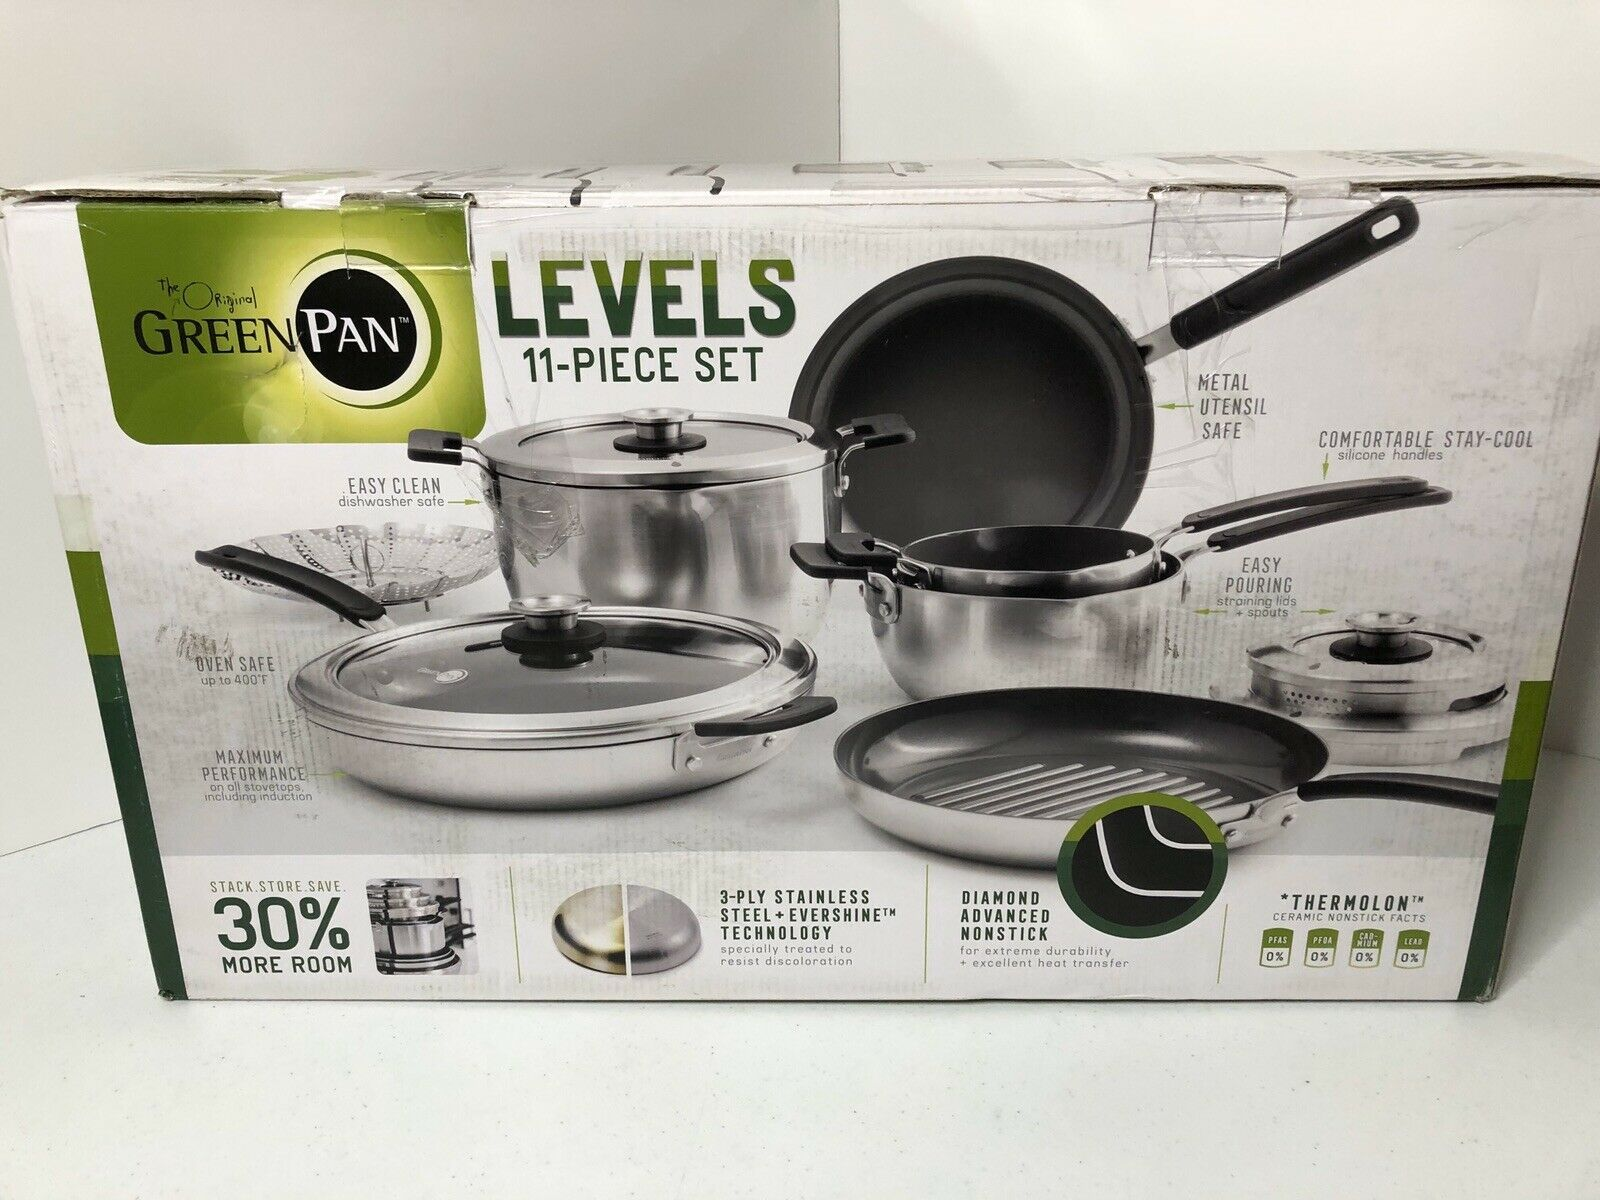 Greenpan Levels 11 Pc Stainless Steel Stackable Ceramic Nonstick